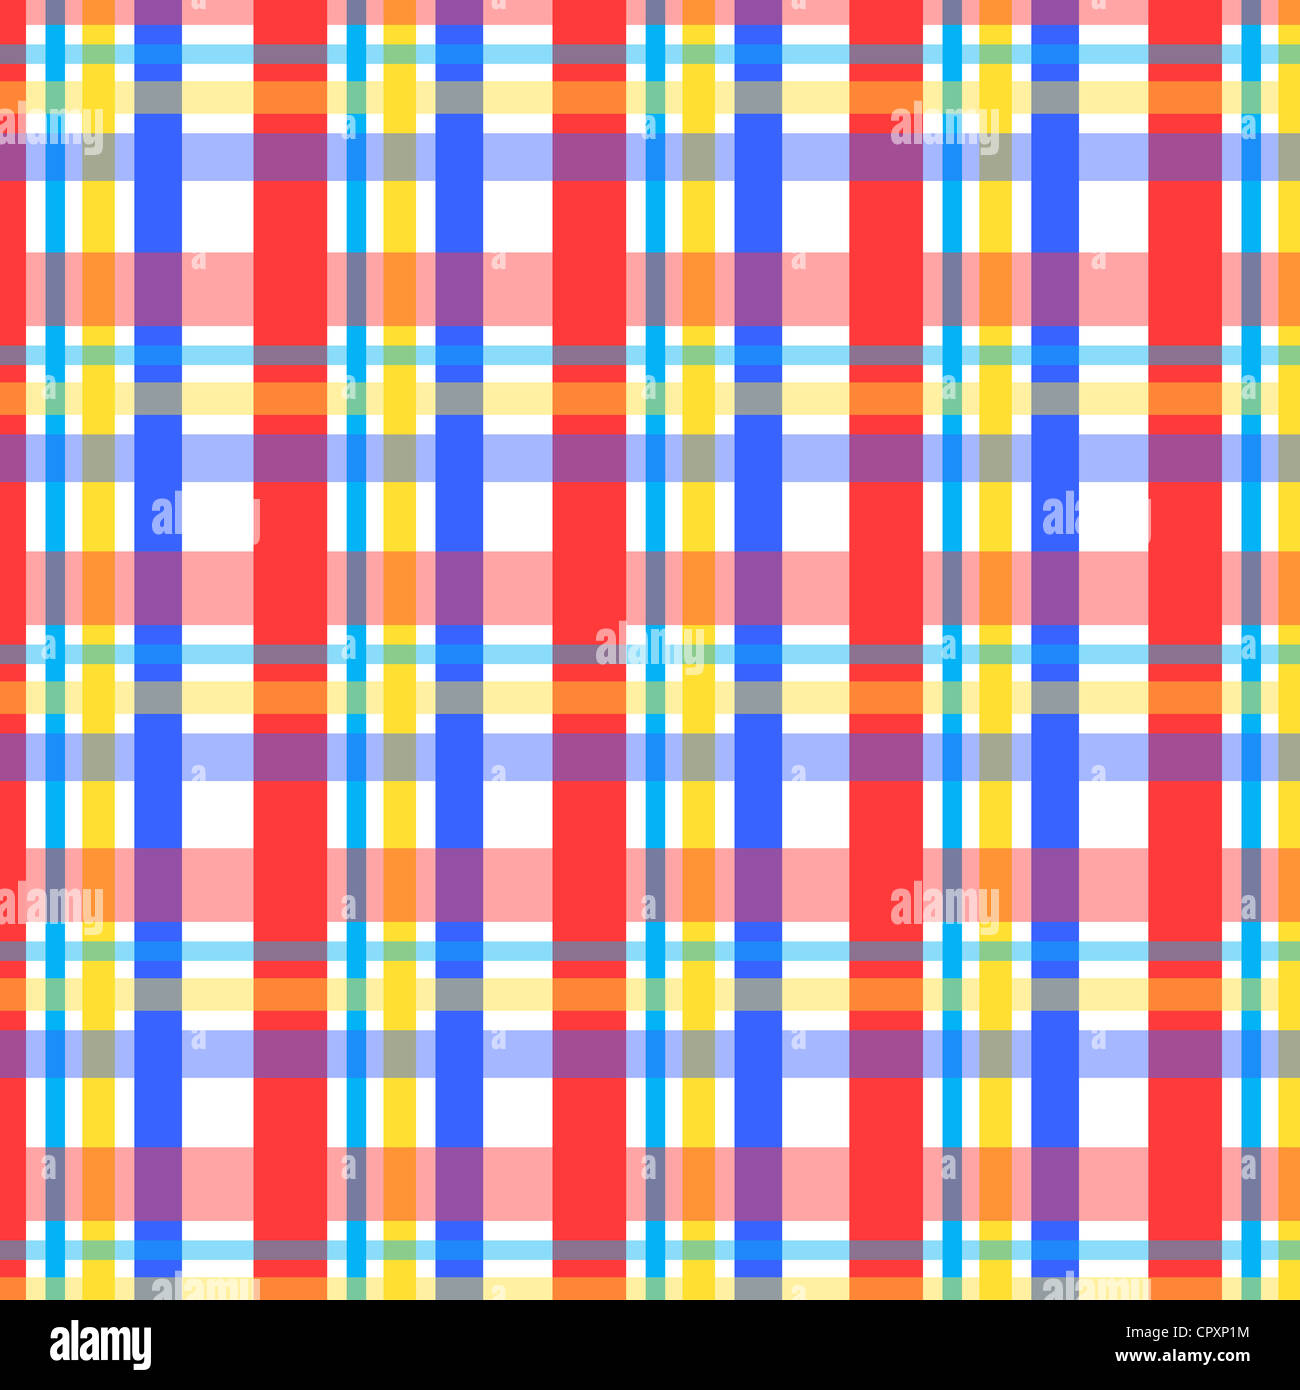 plaid pattern in red blue and yellow colors stock photo royalty free image 48531216 alamy. Black Bedroom Furniture Sets. Home Design Ideas